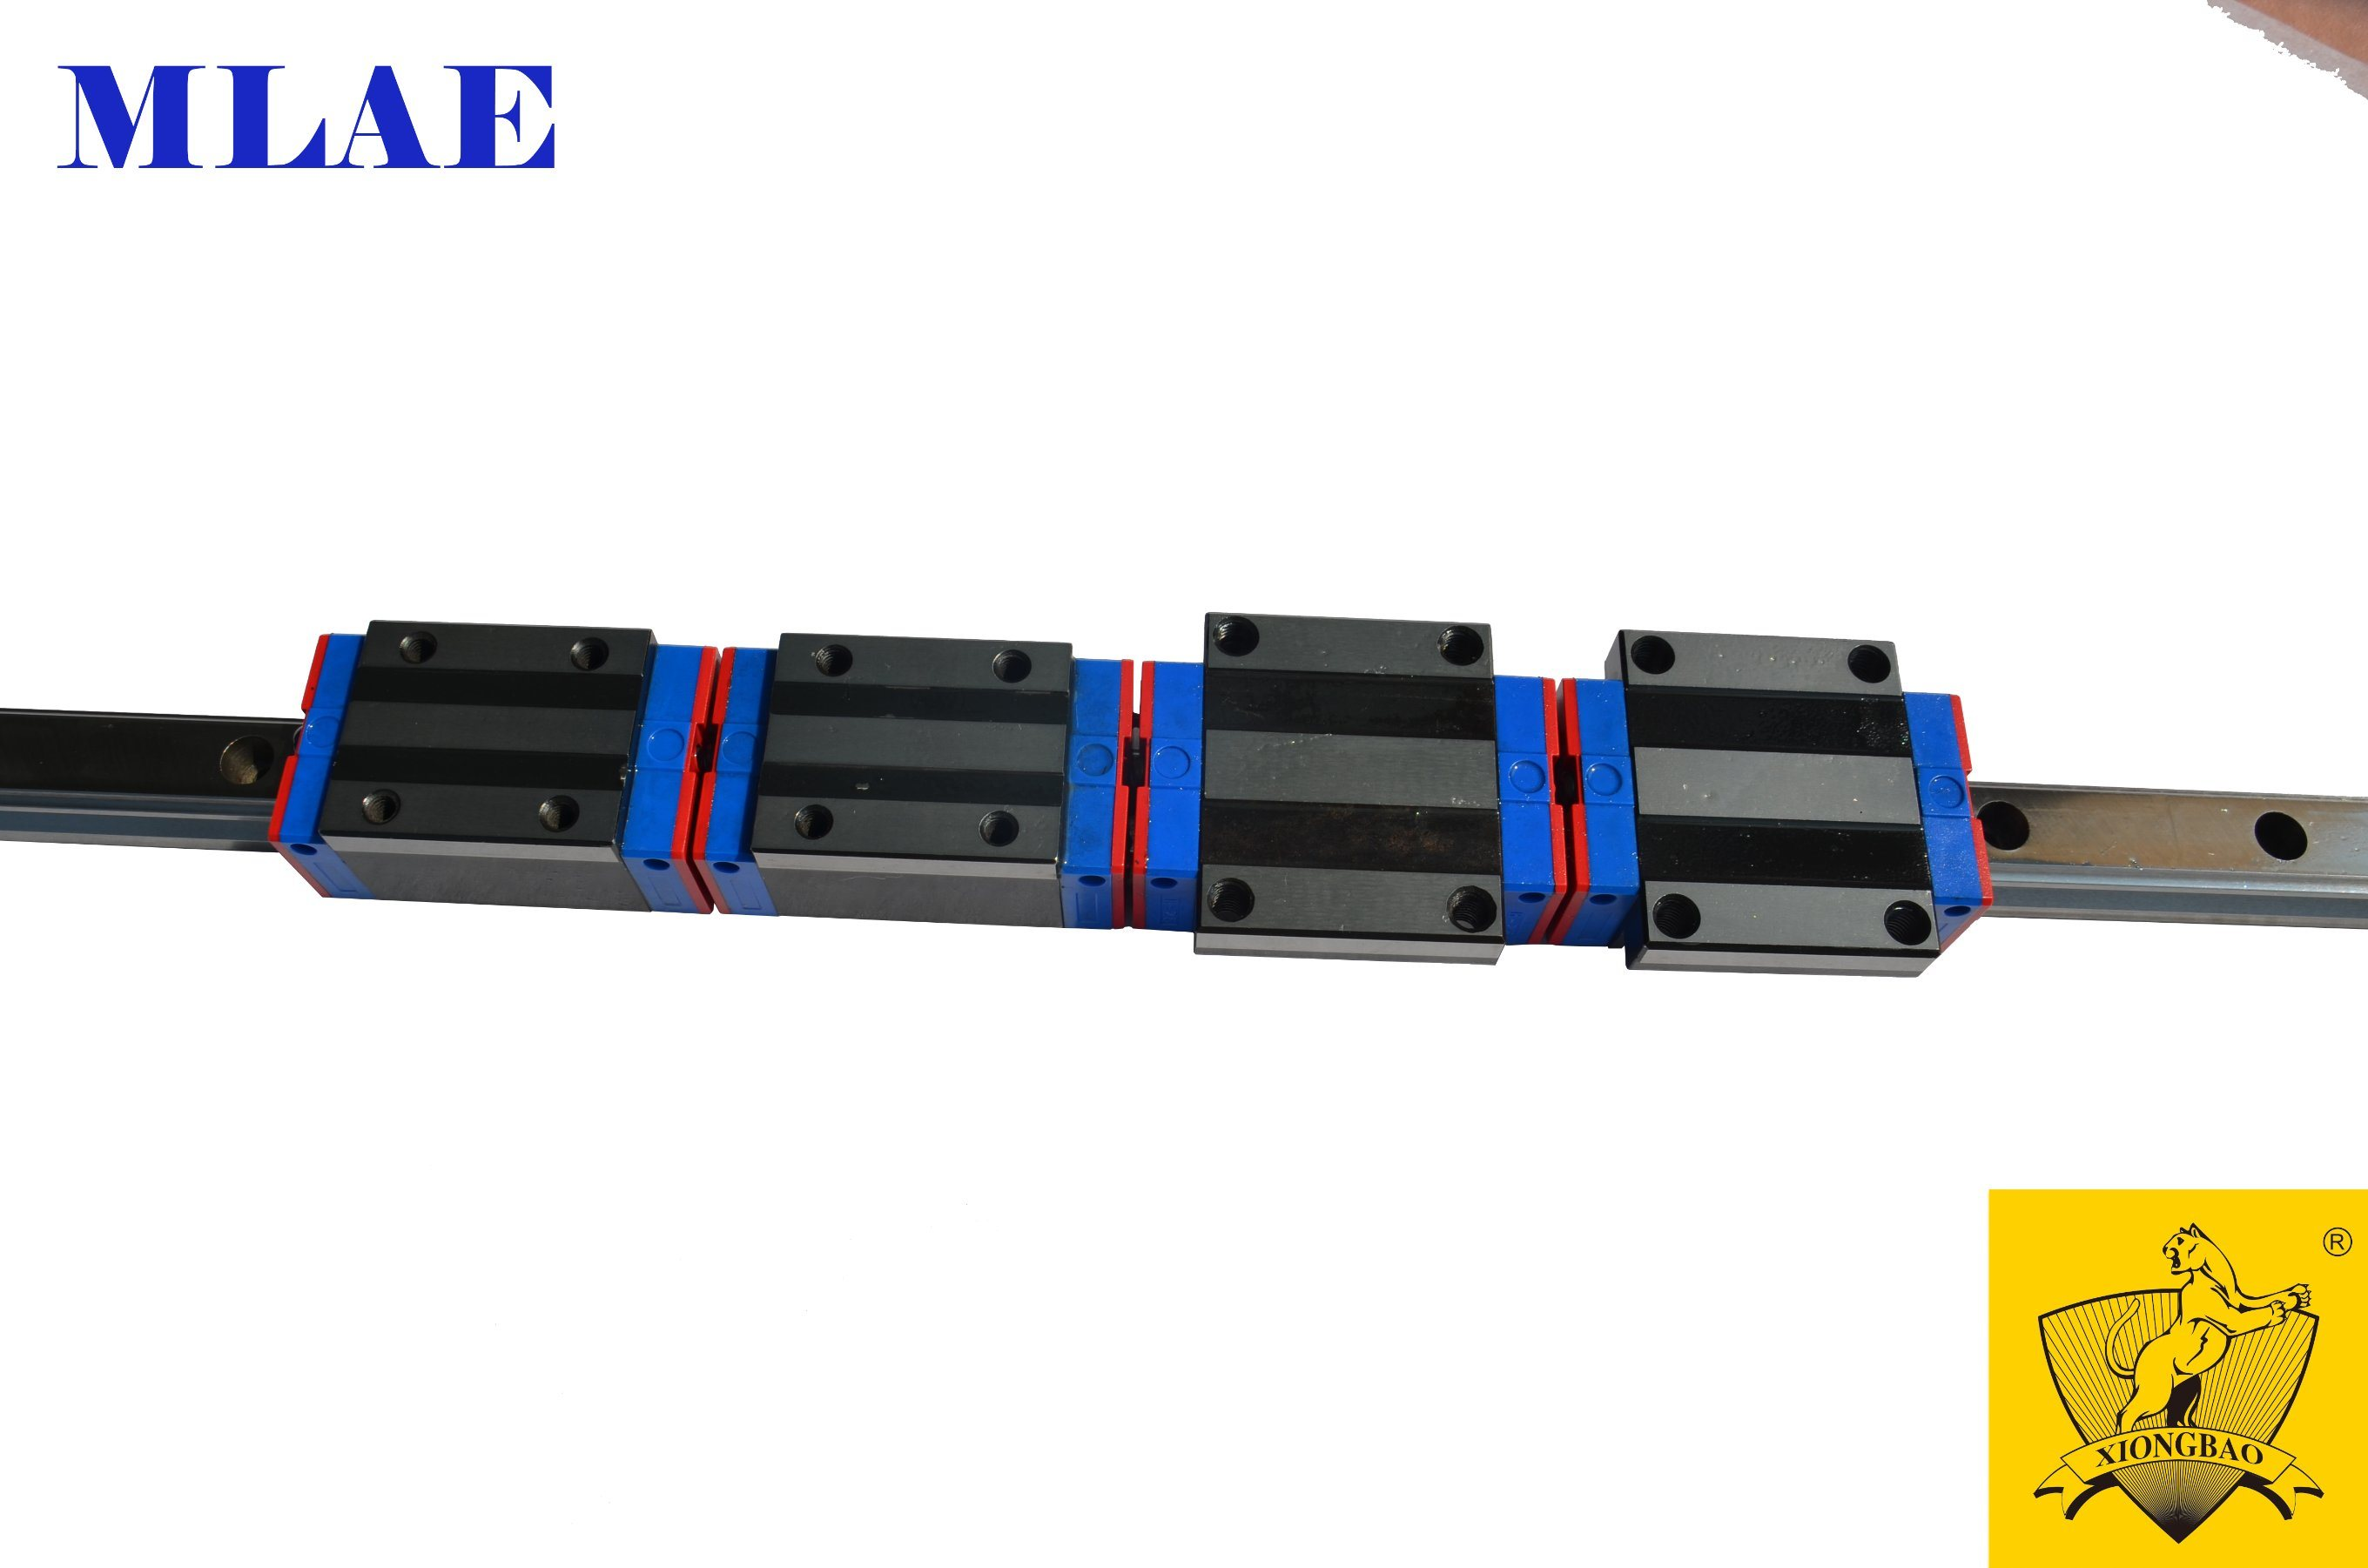 Same as Hgw15ca Carriage for Xbd15 Linear Guide